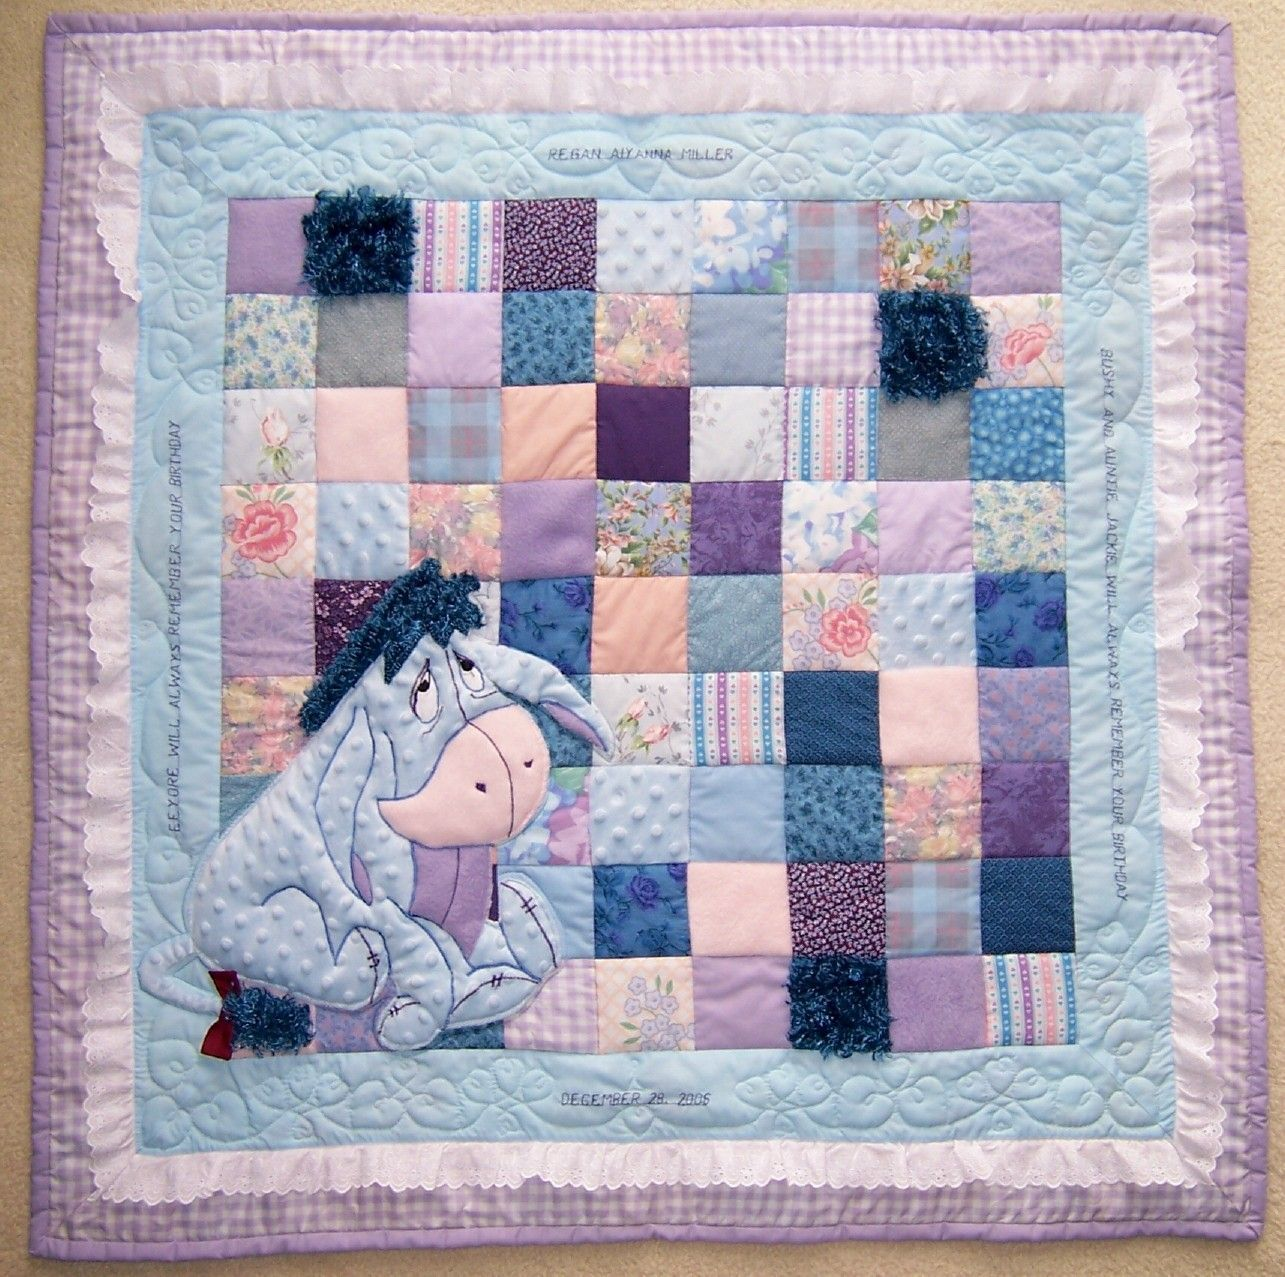 Pin by Annette Riebe on Quilt It! in